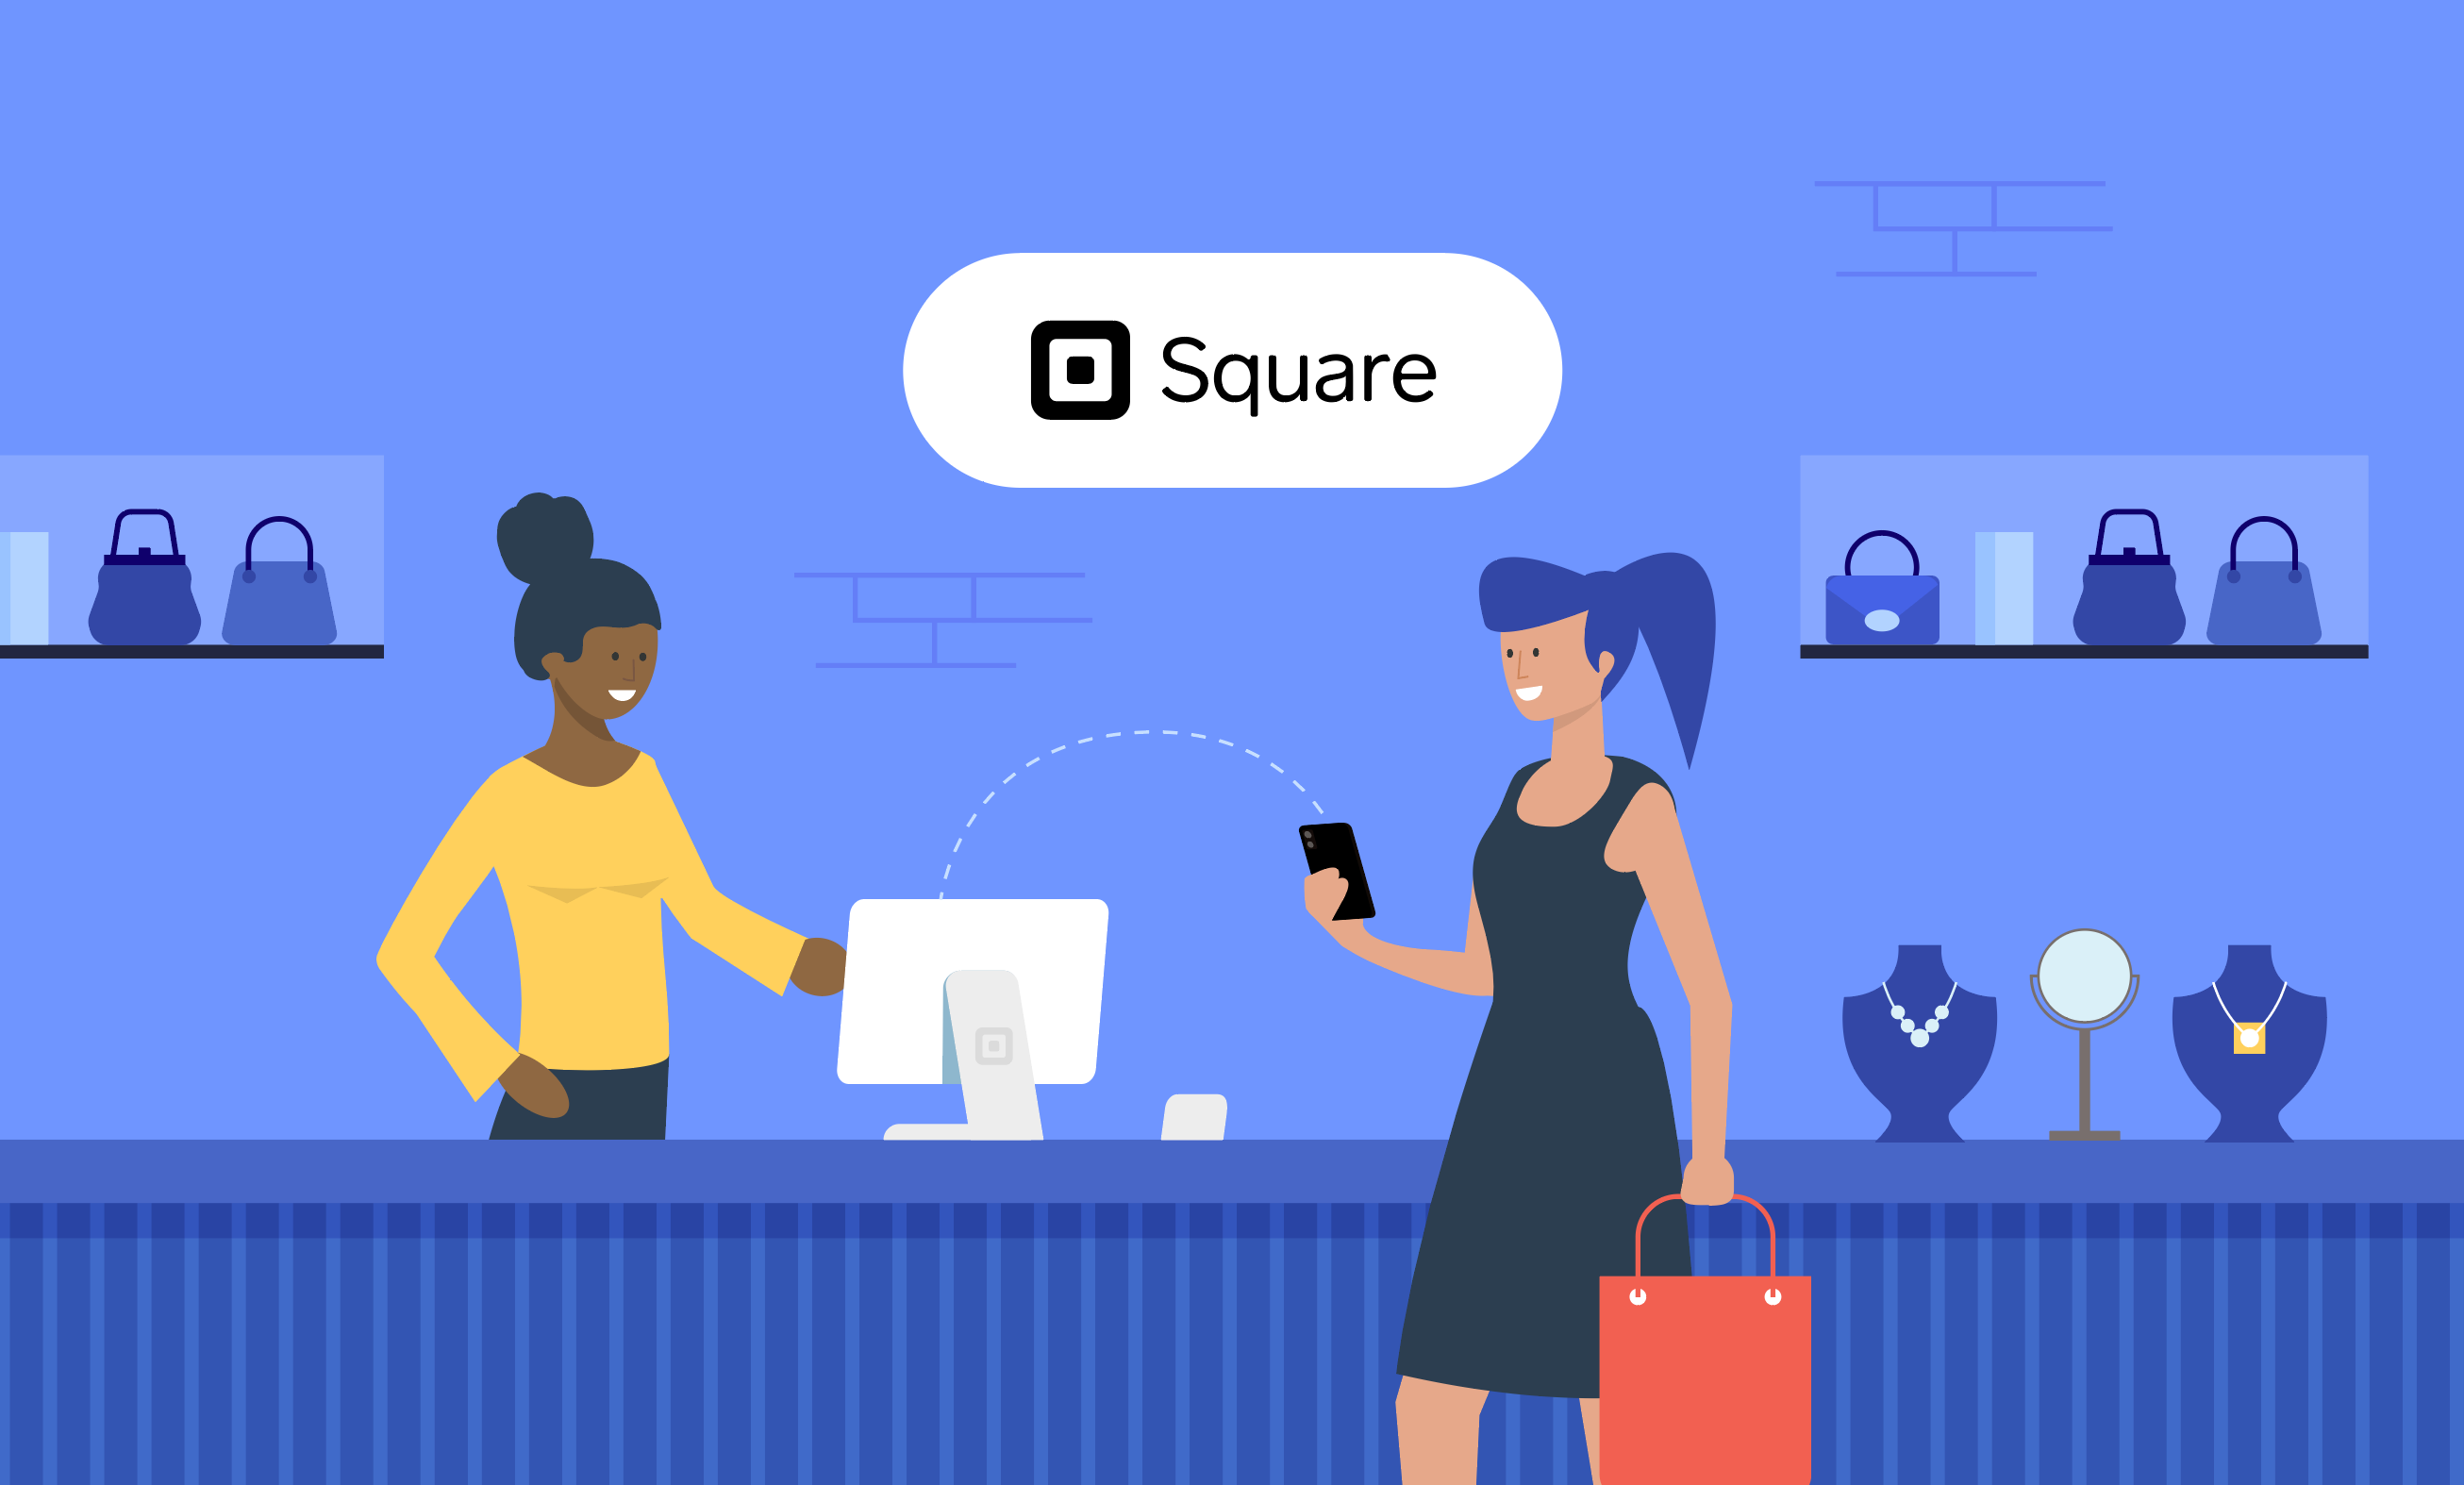 Square for Business: Guide to Getting Started, Fees & More